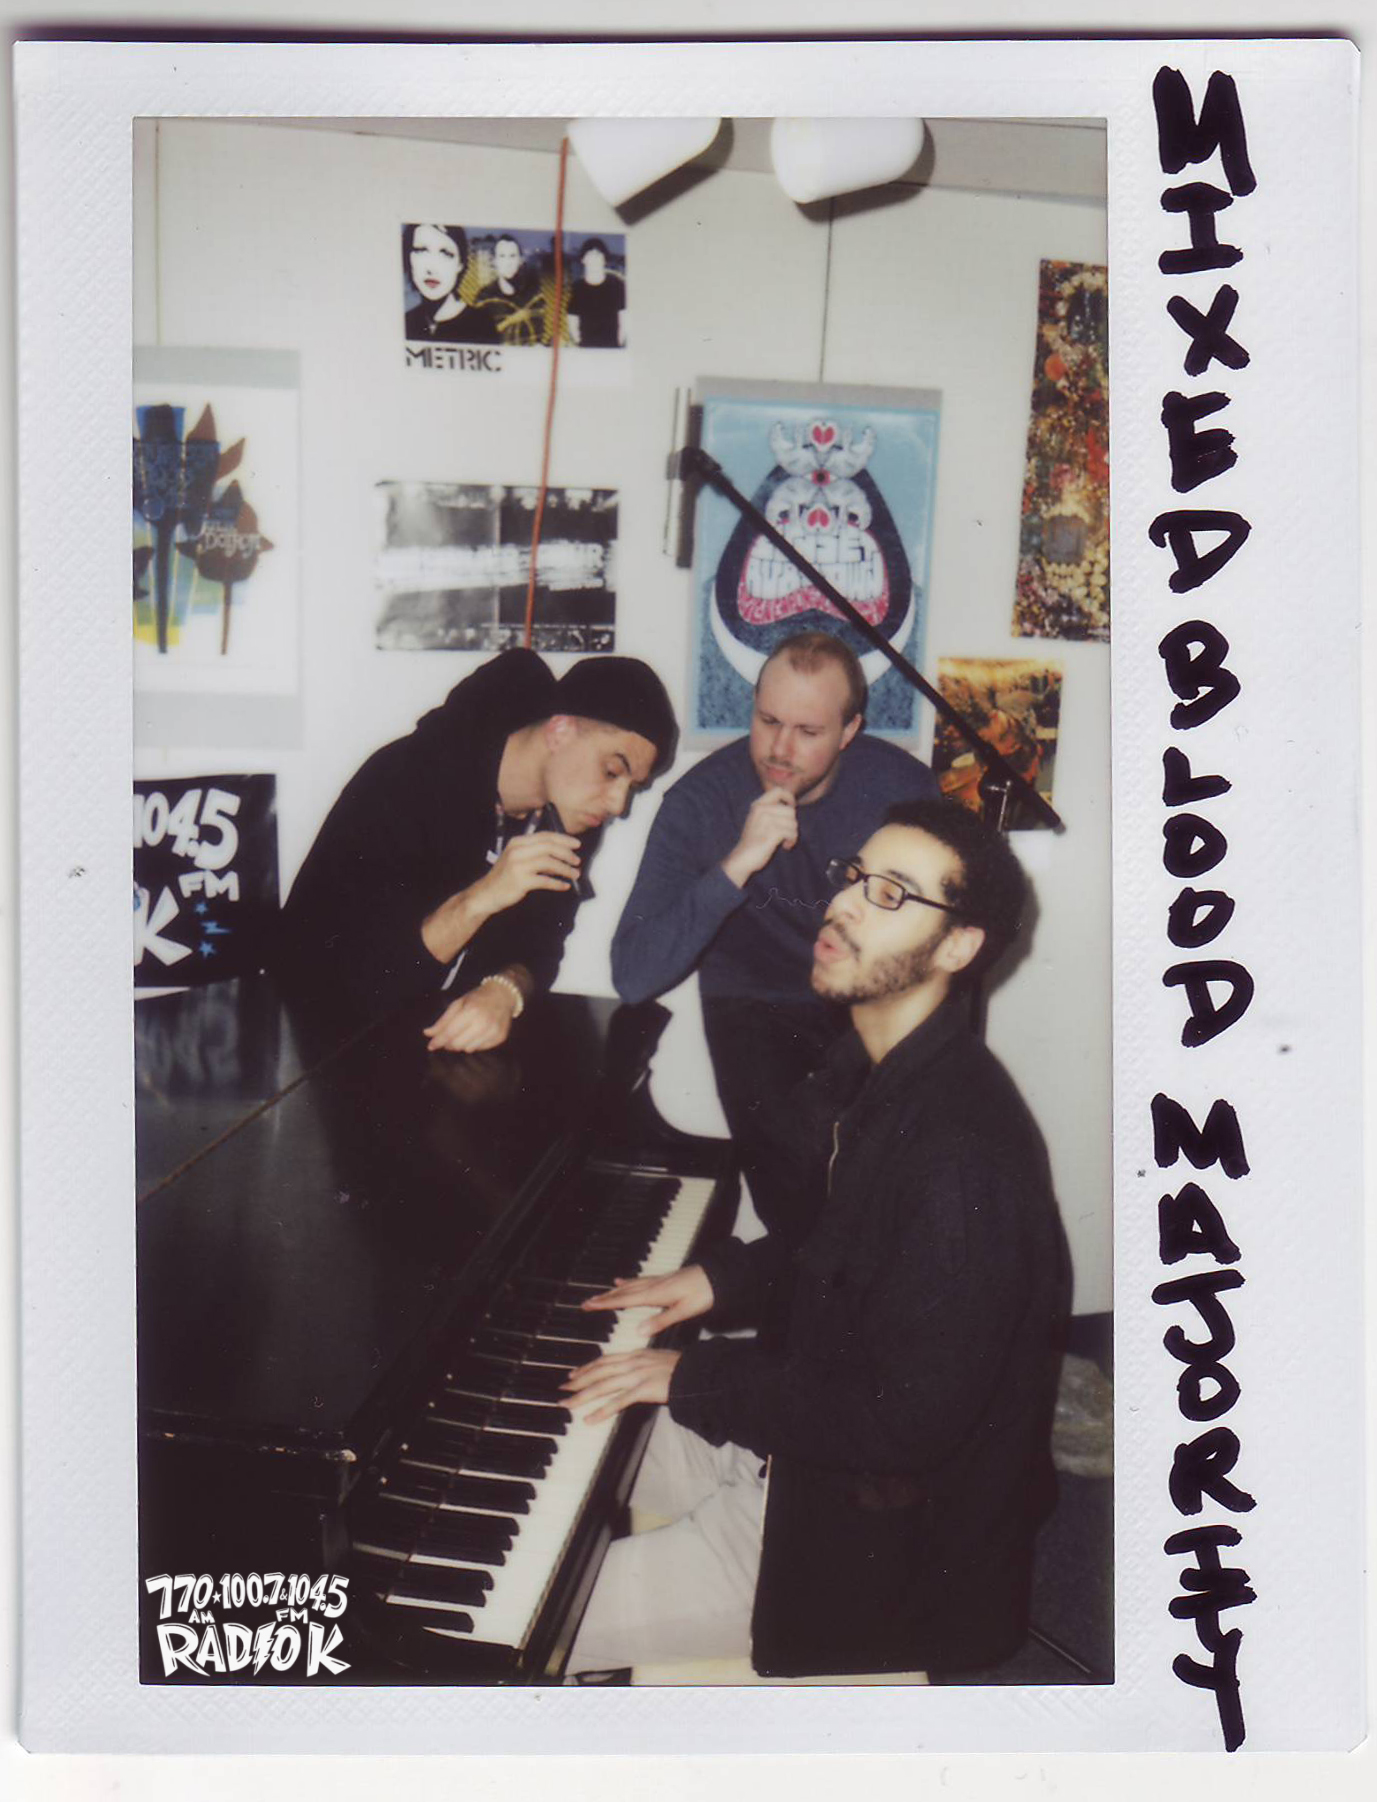 Mixed Blood Majority Radio K In-studio Polaroid Off The Record